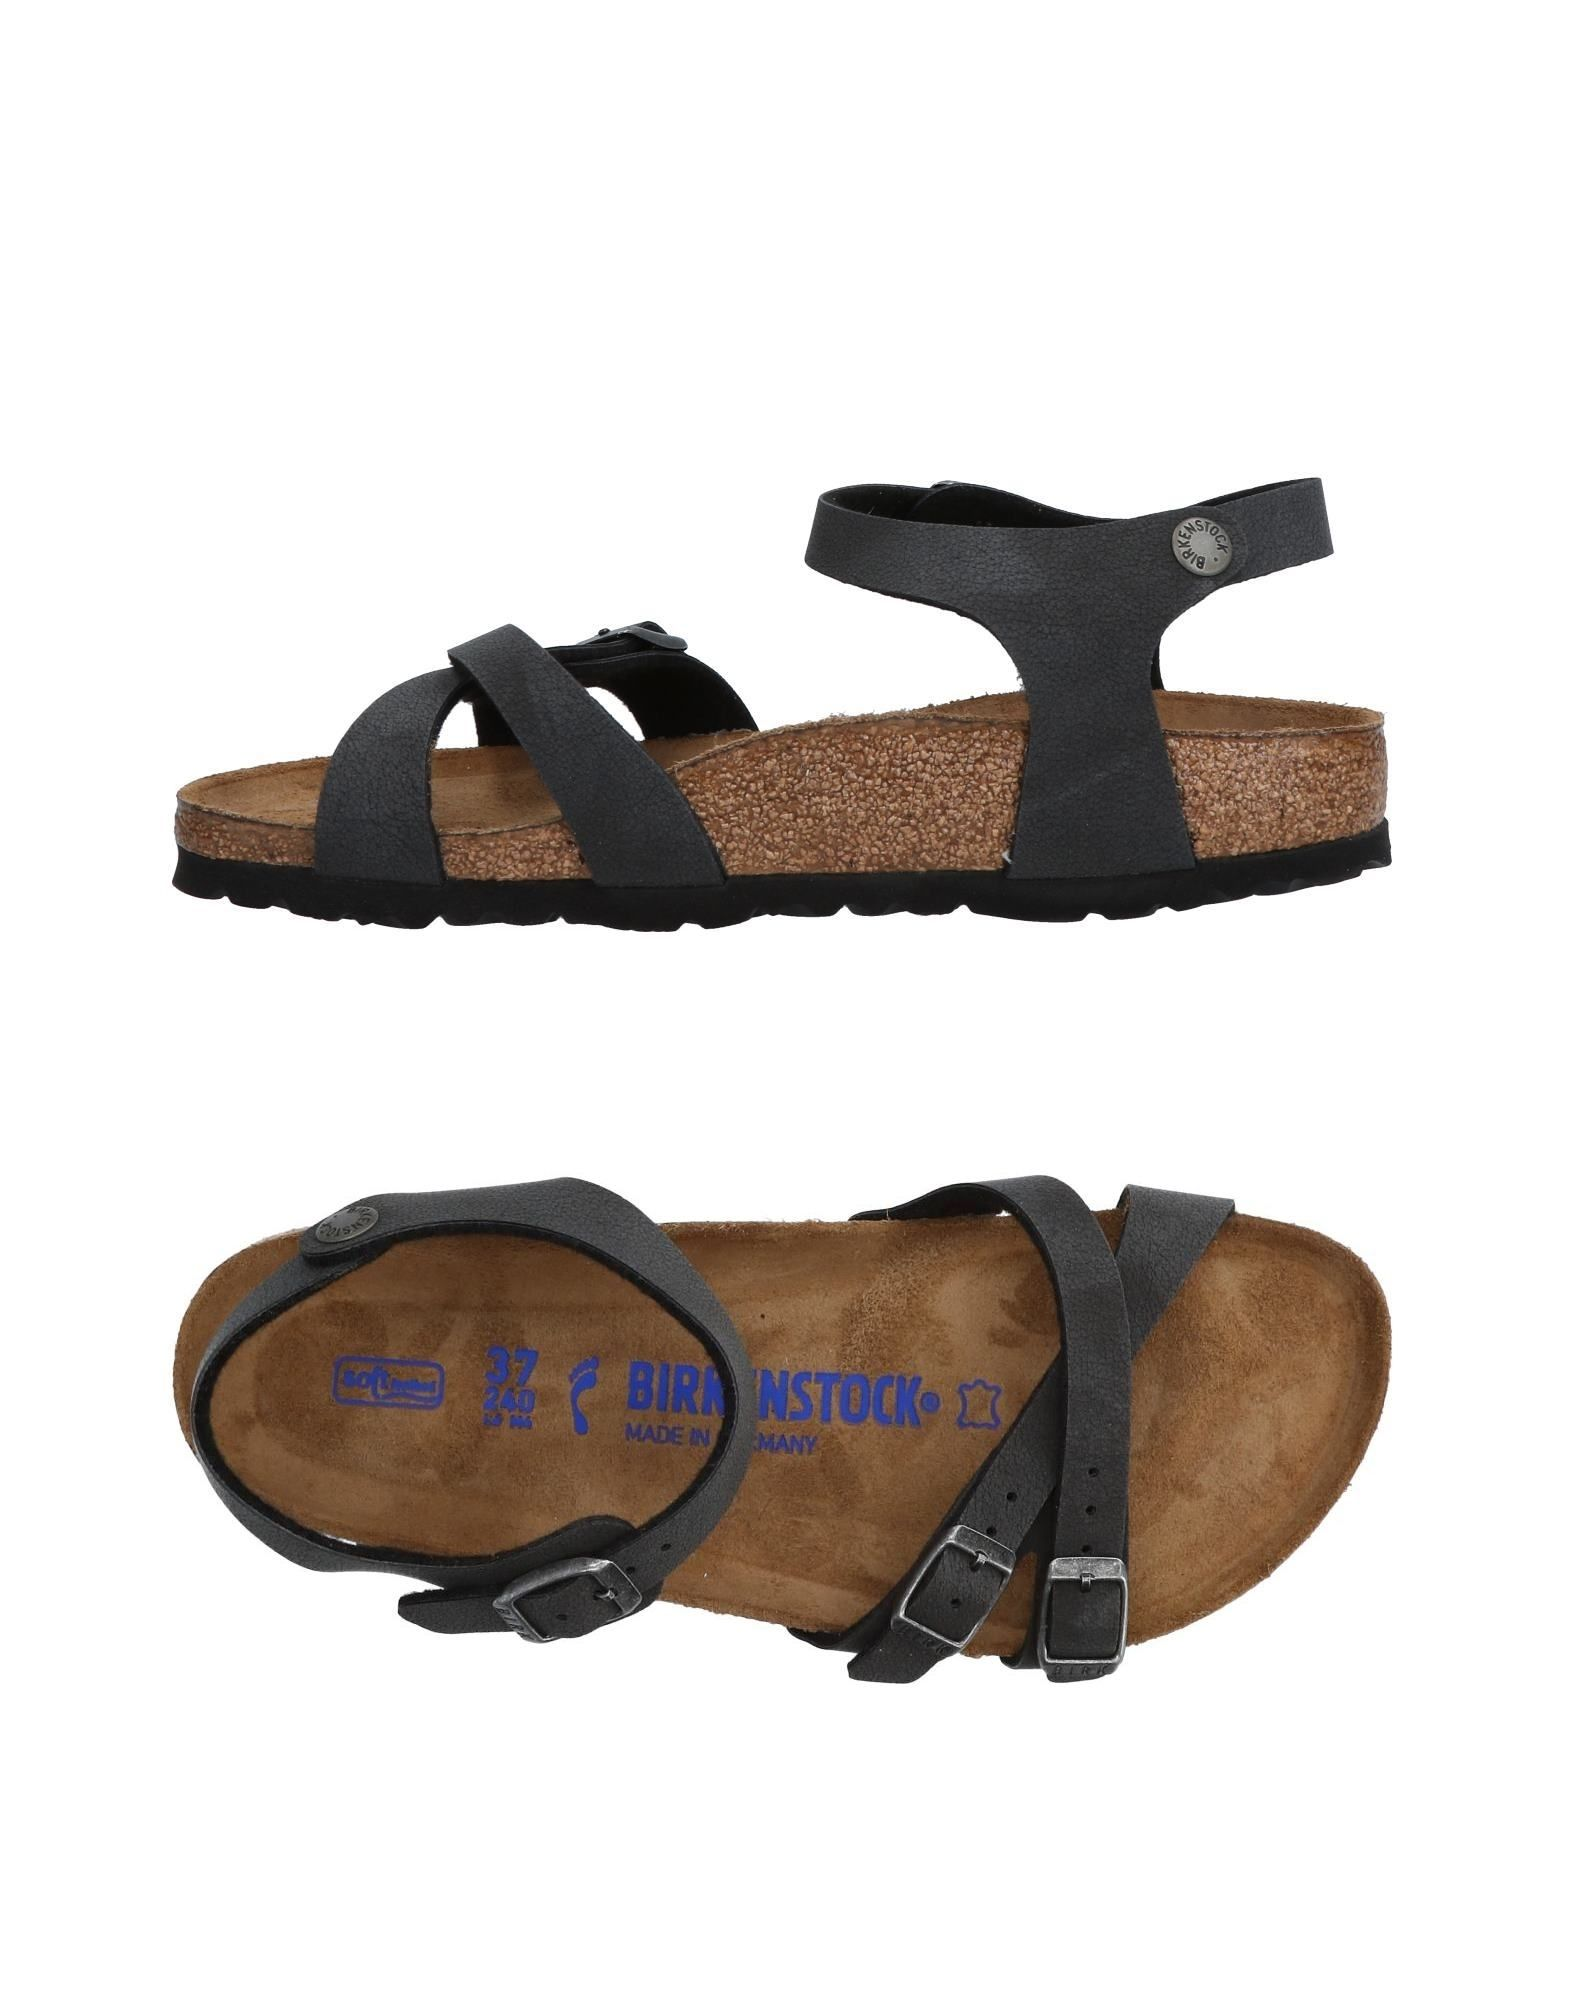 5e4b444b3078 Birkenstock Sandals - Women Birkenstock Sandals online on YOOX ...